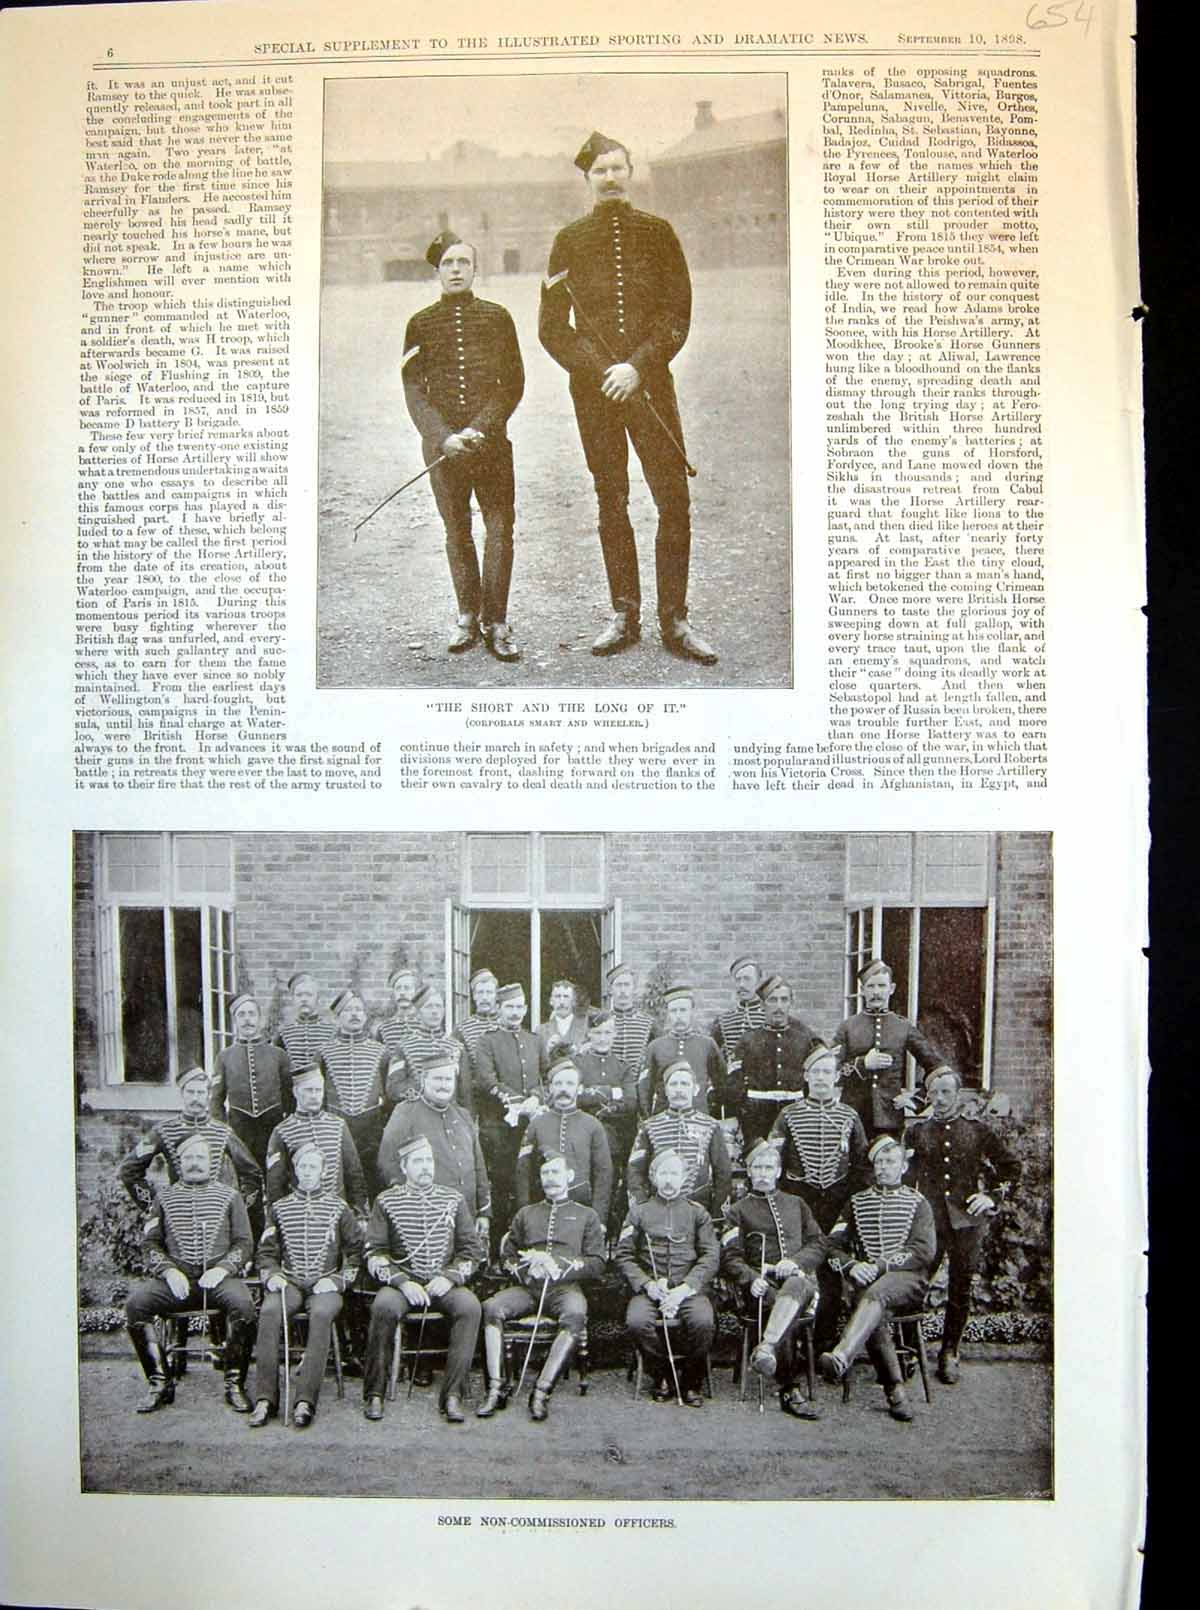 Antique-Print-Non-Commissioned-Officers-Recruits-Learning-Ride-Action-1898-19th